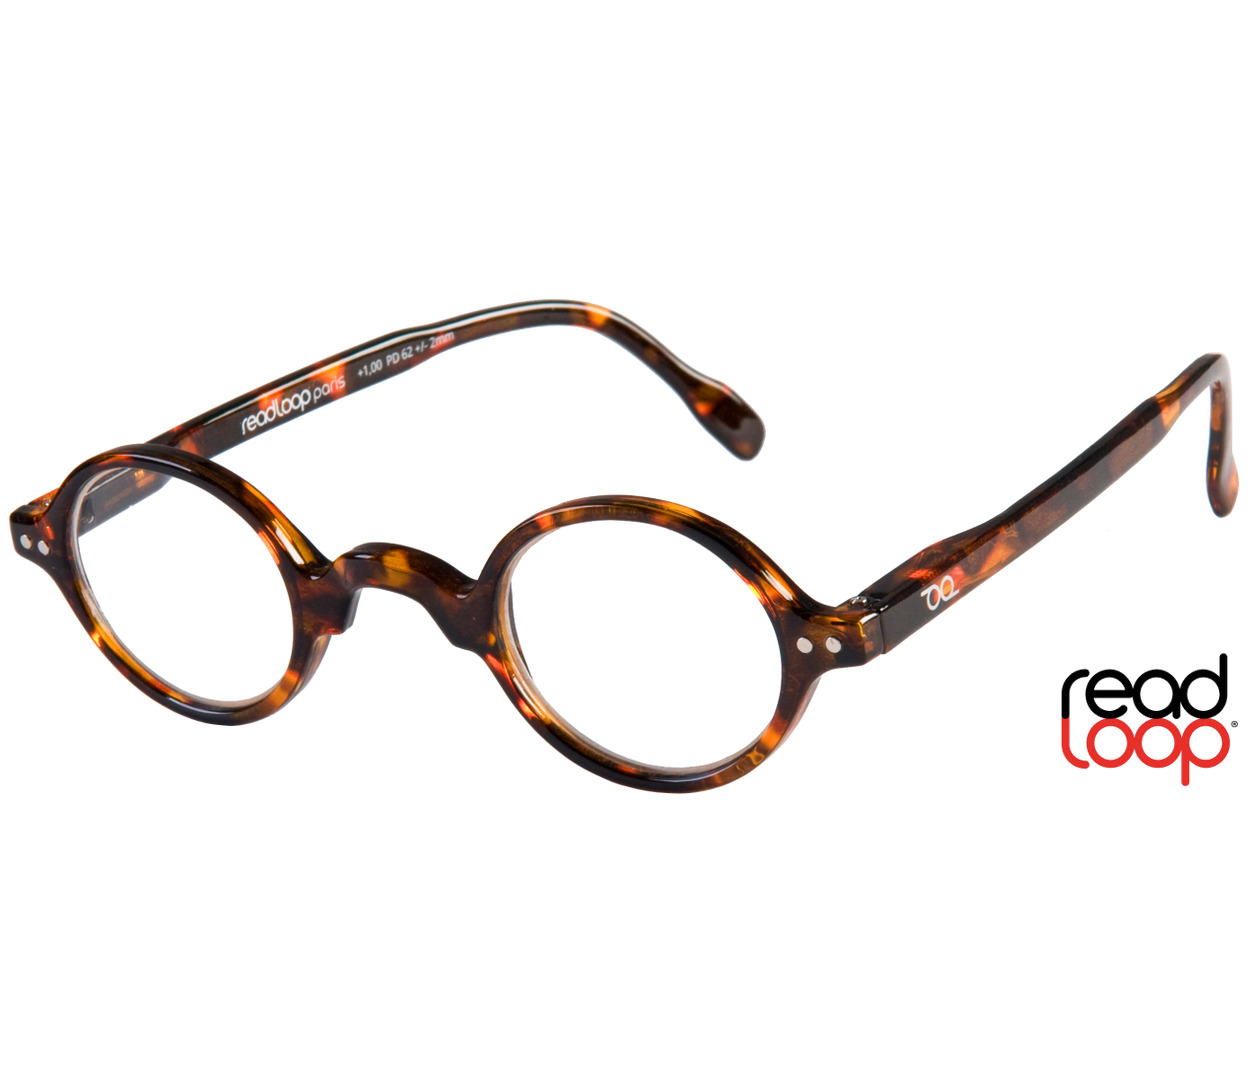 Main Image (Angle) - Legend (Tortoiseshell) Retro Reading Glasses